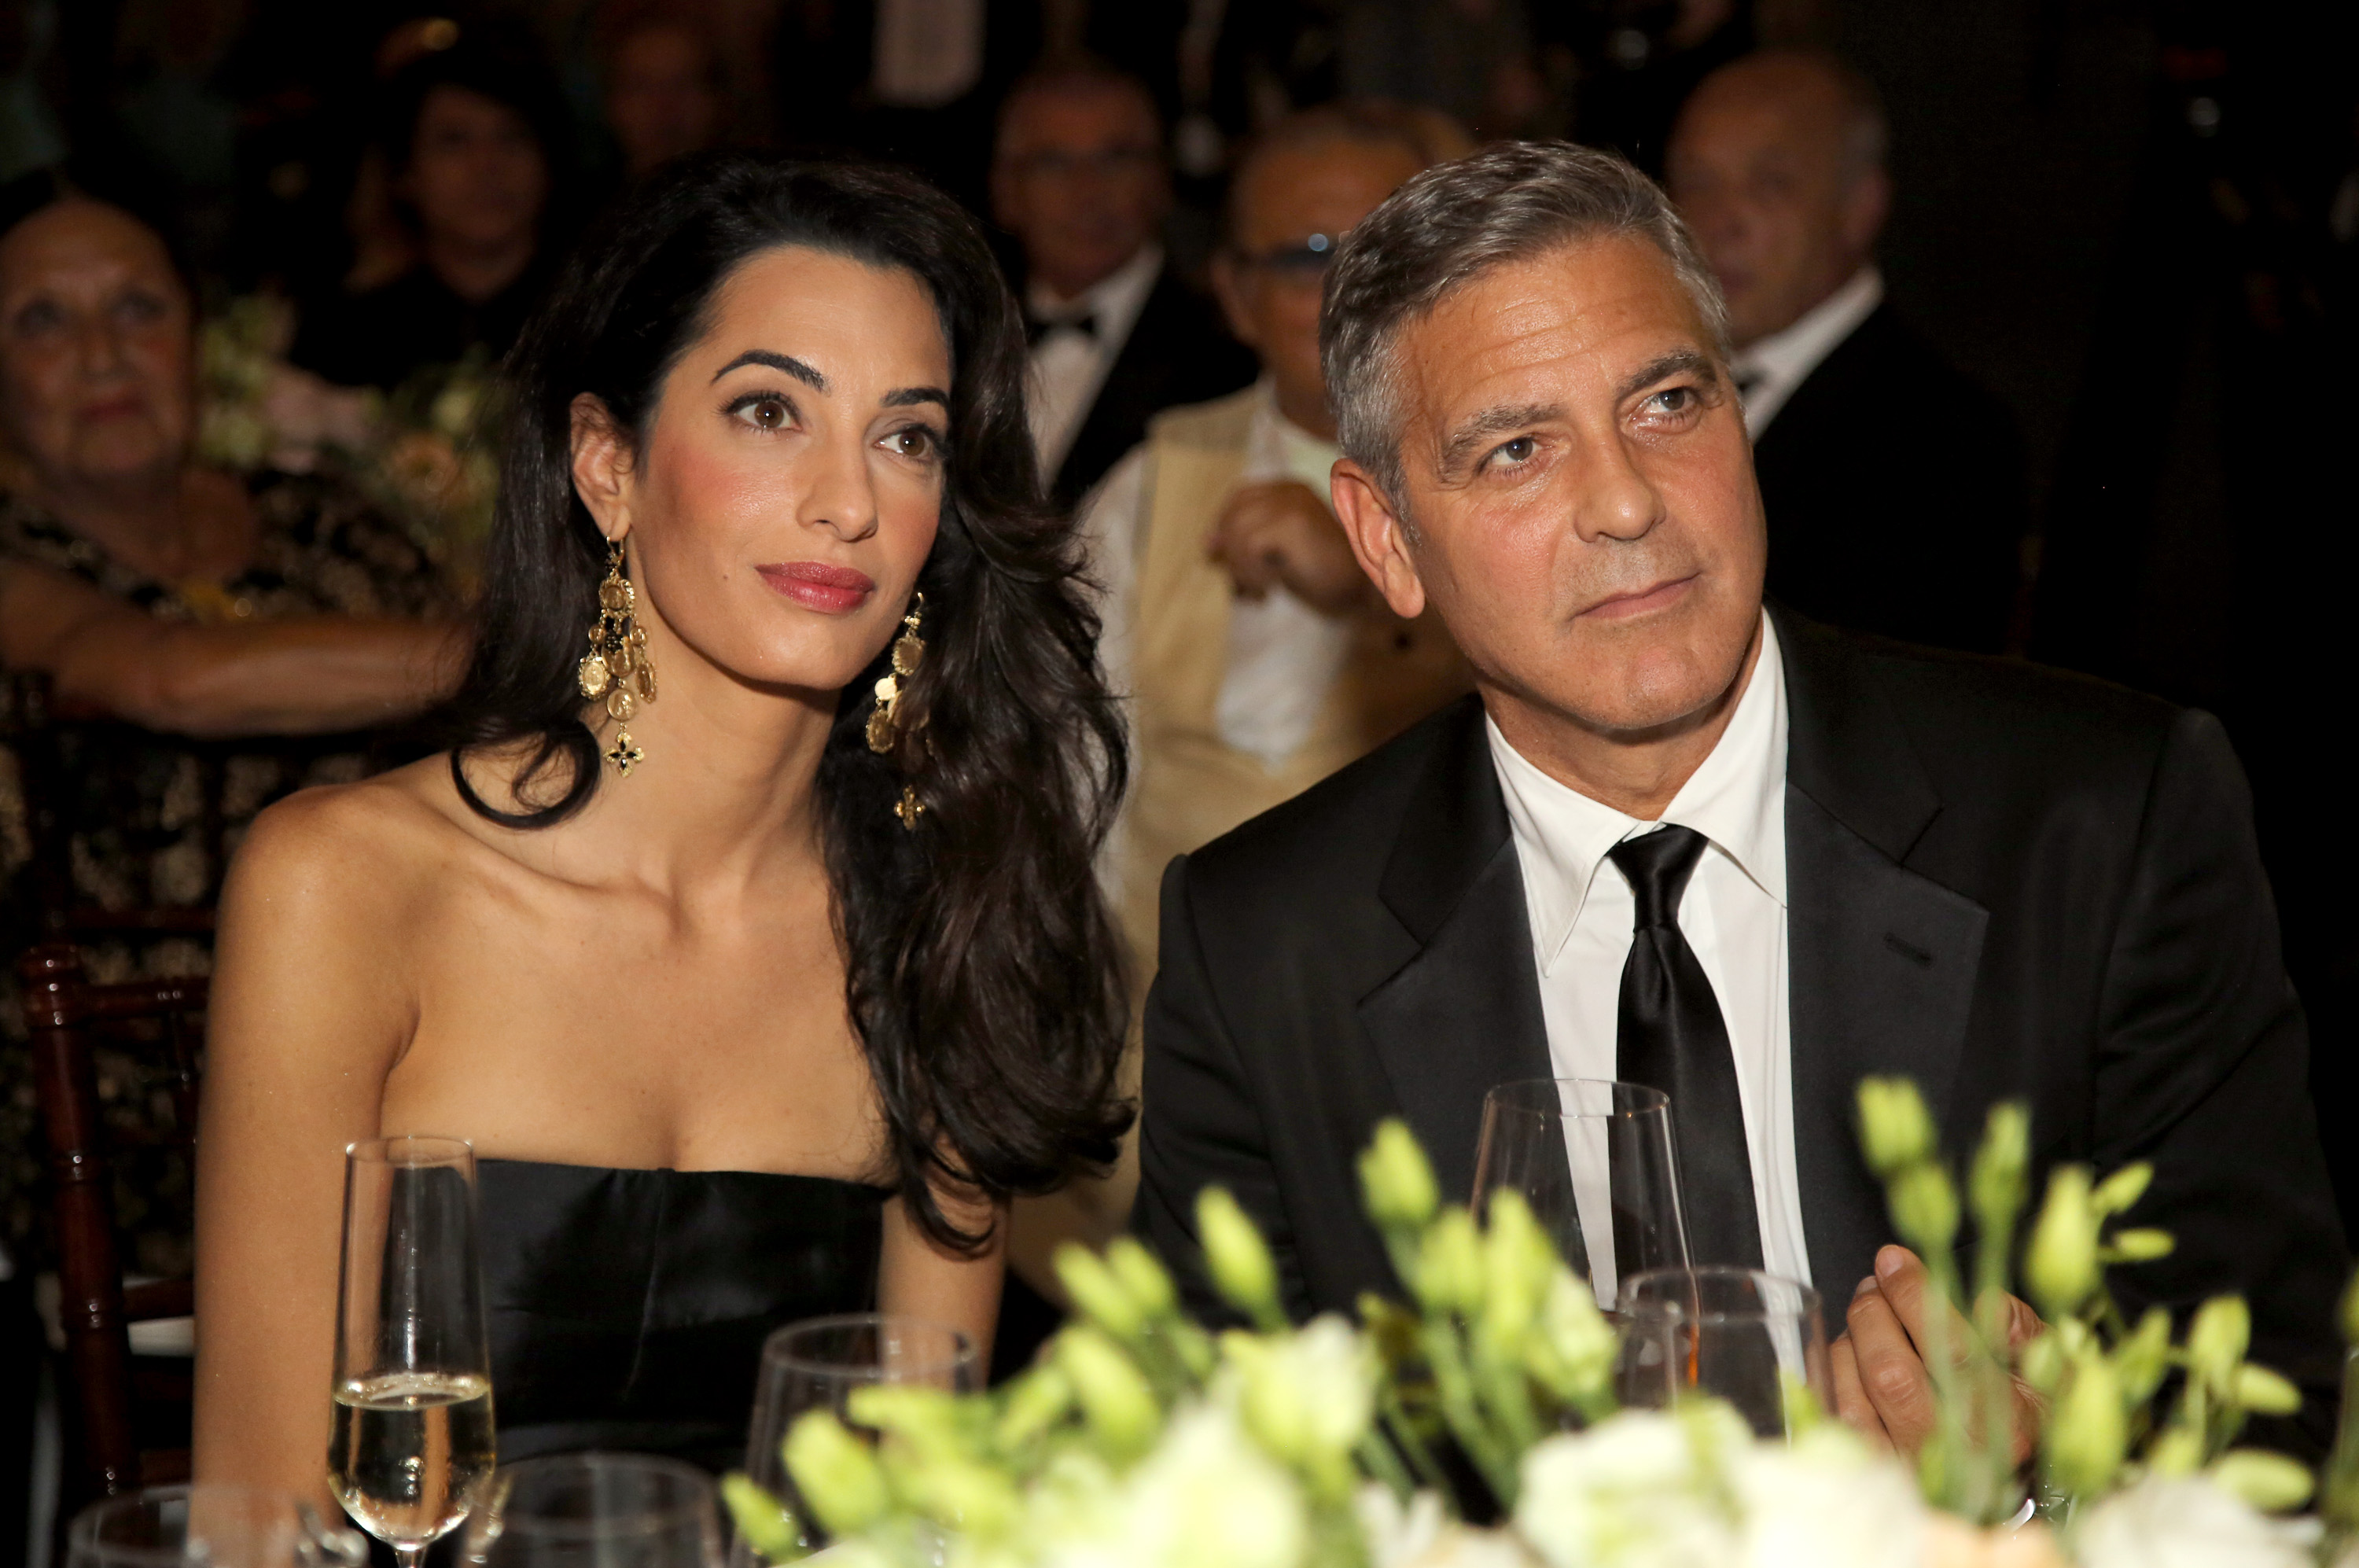 FLORENCE, ITALY - SEPTEMBER 07:  George Clooney (R) and Amal Alamuddin attend the Celebrity Fight Night gala celebrating Cele